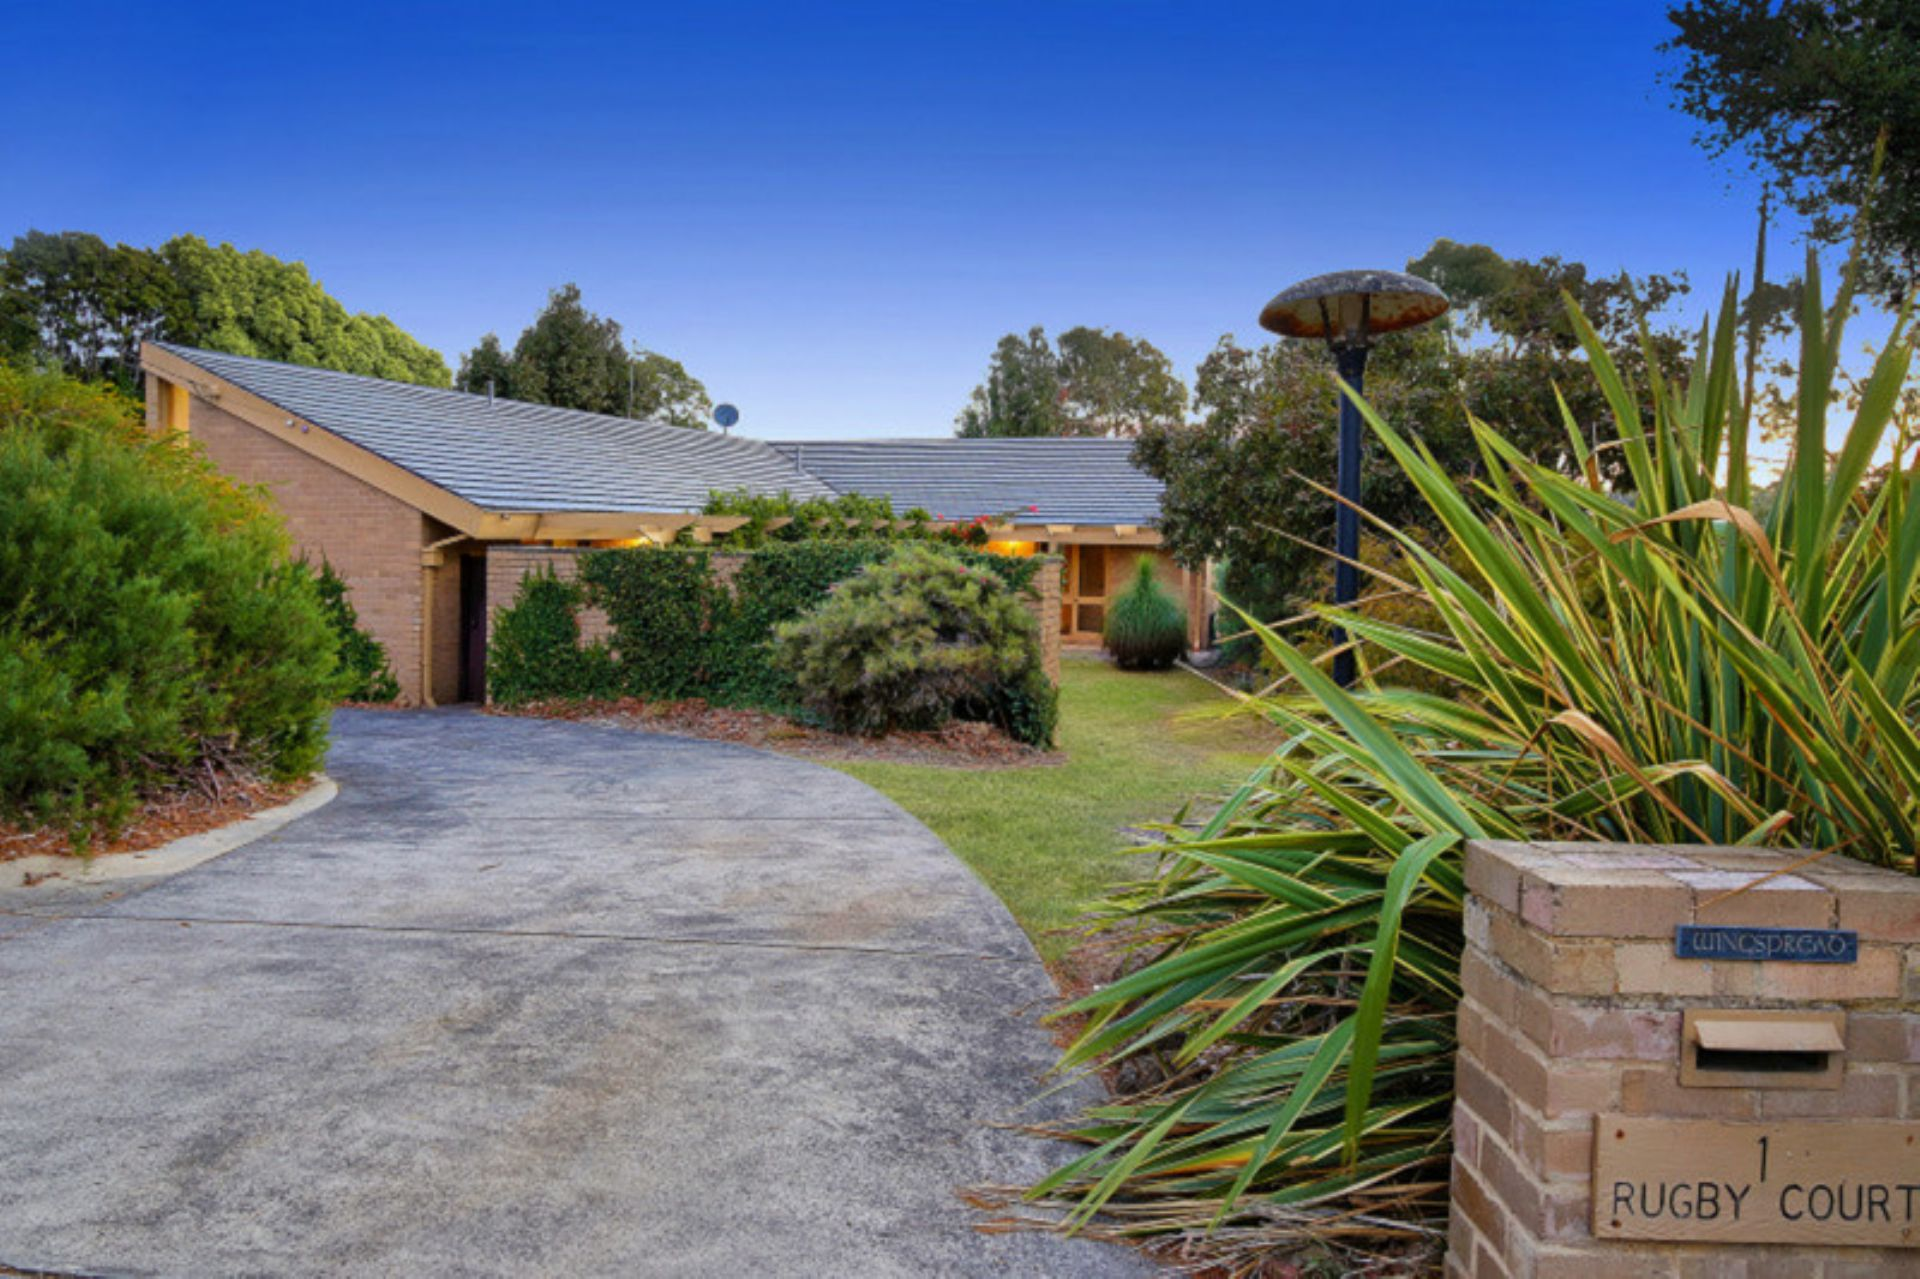 1 Rugby Court, MOUNT ELIZA, VIC, 3930 - Image